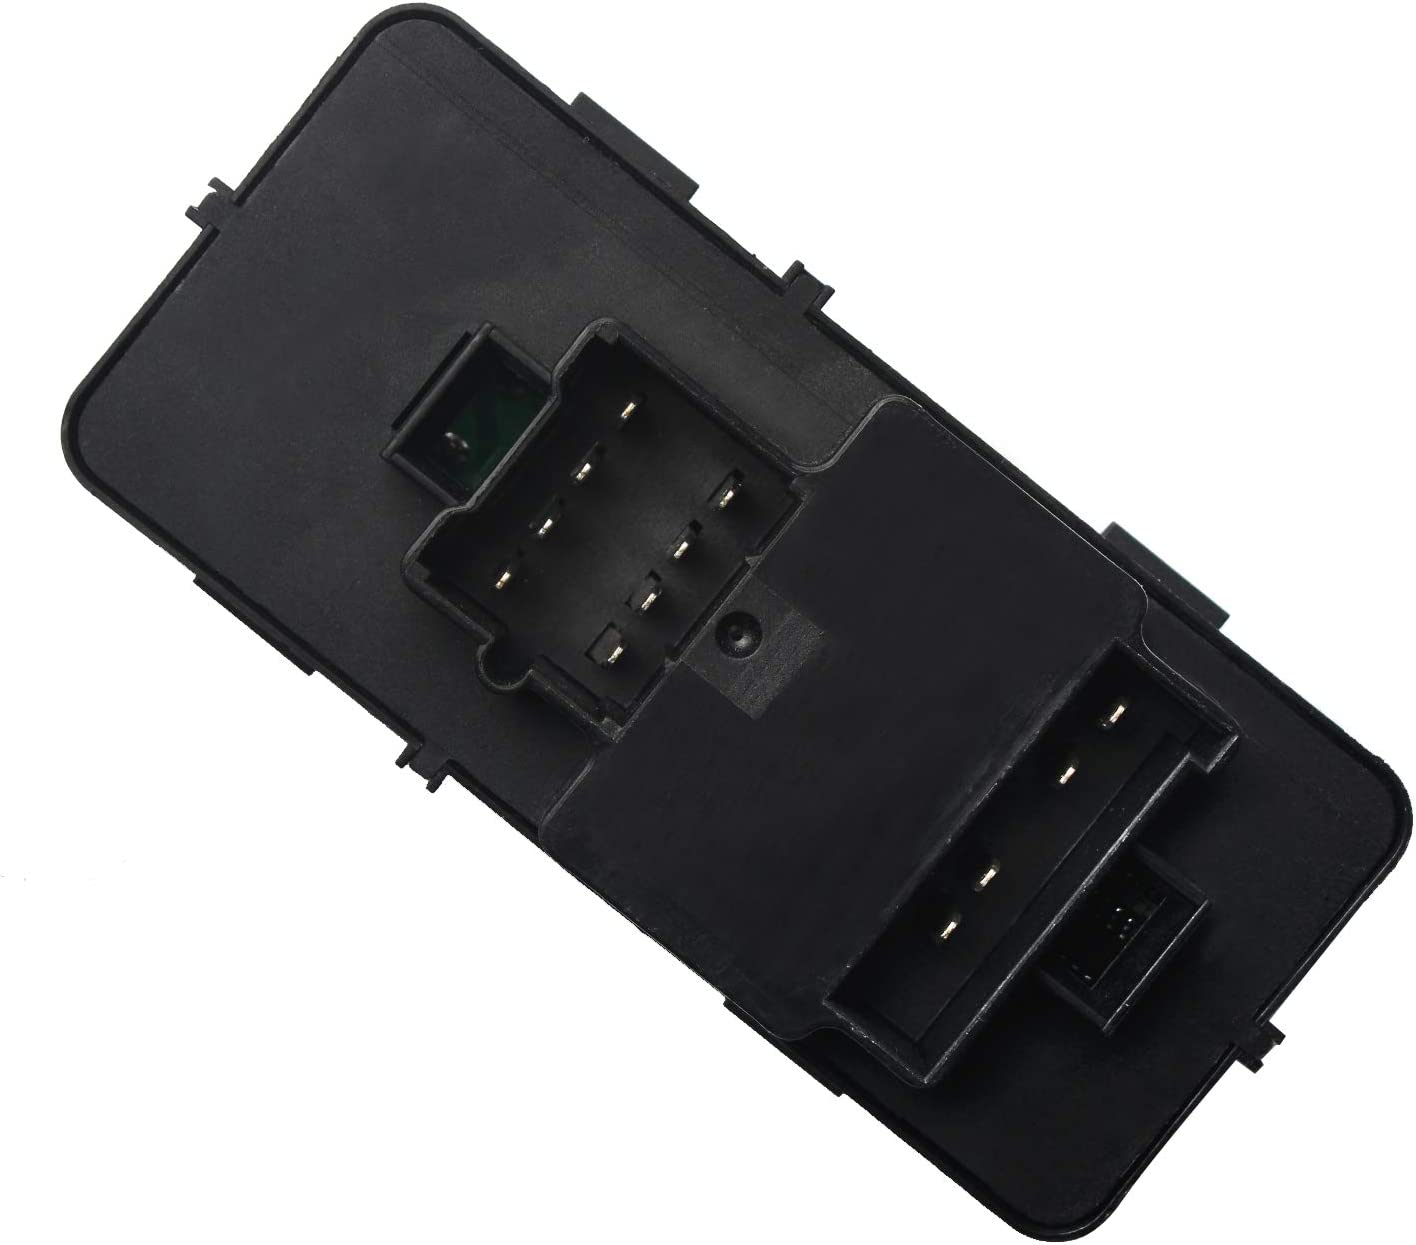 22664398 Beneges Master Power Window Switch Compatible with 2003-2007 Saturn Ion Front Left Driver Side Control Switch DWS1332